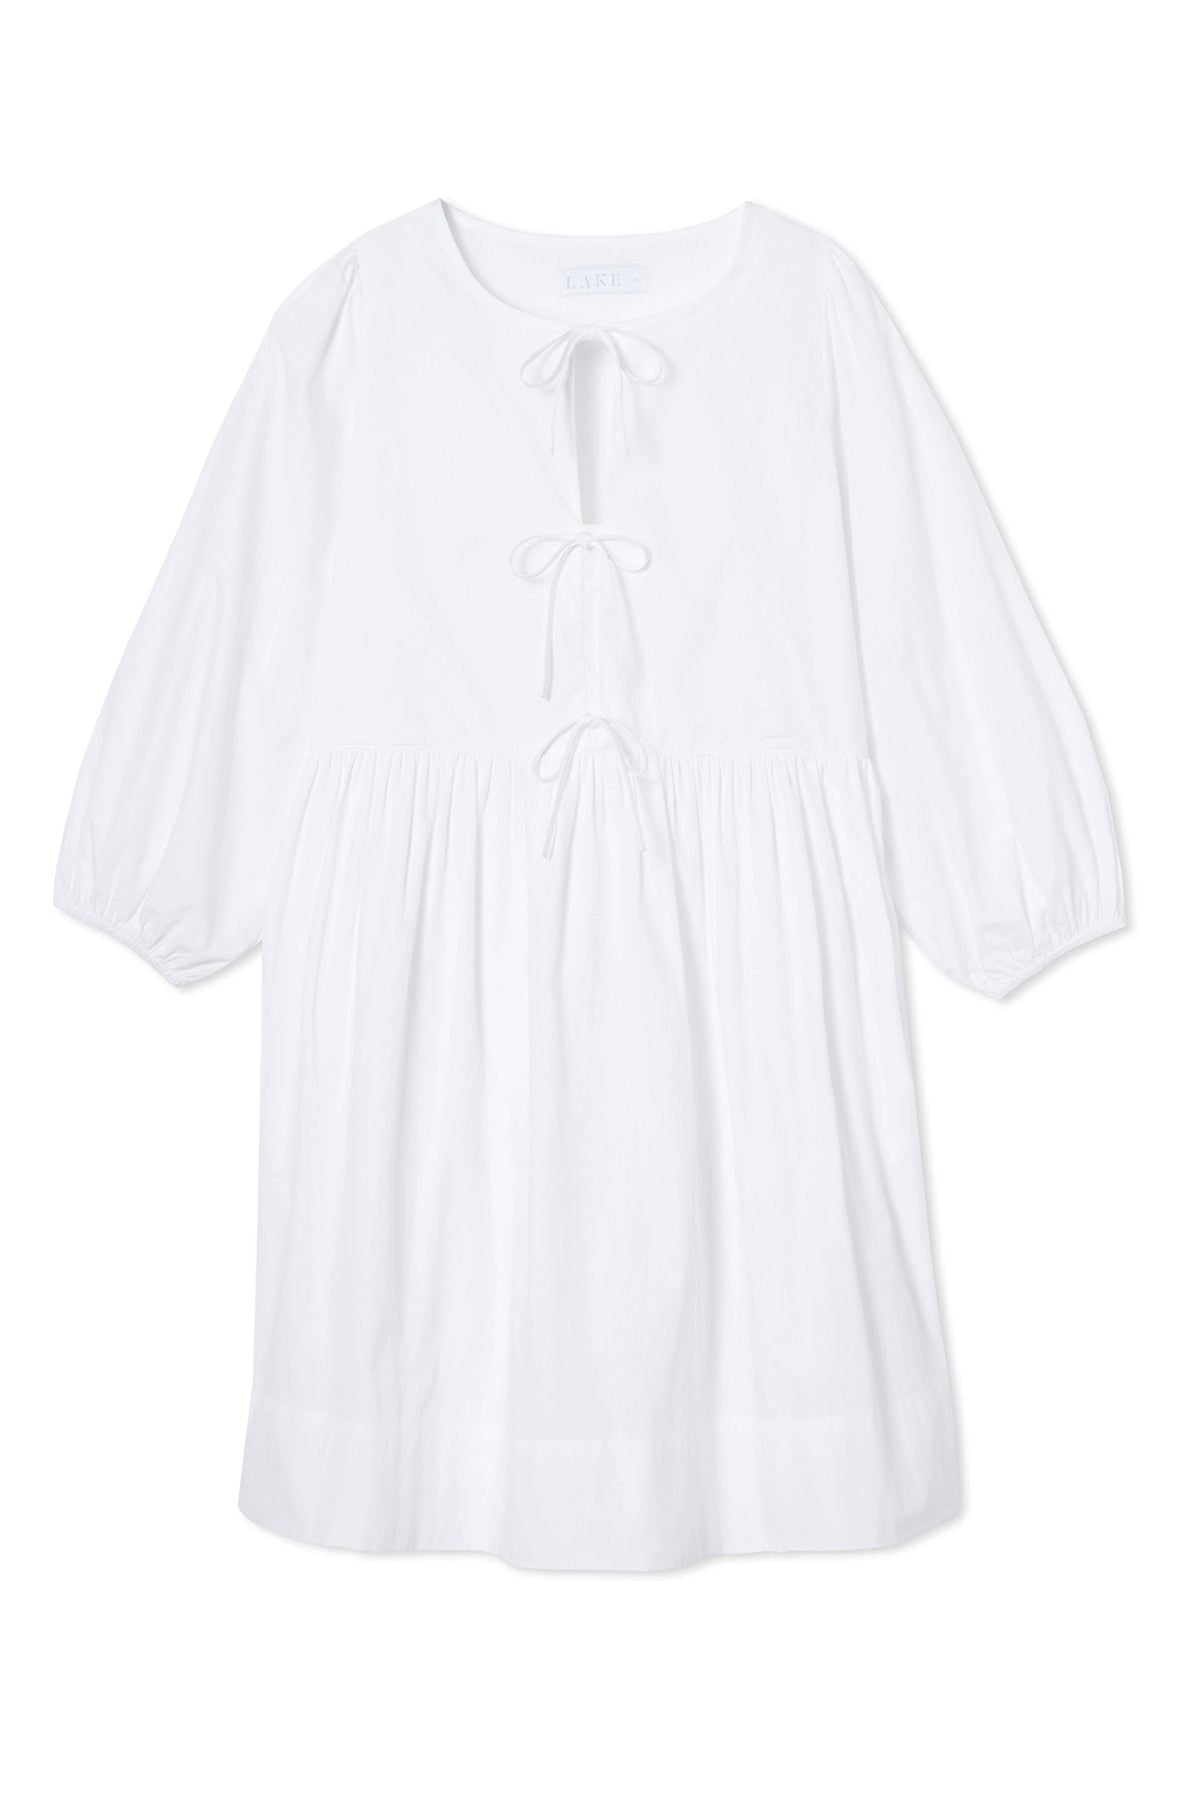 Poplin Triple Tie Dress in White